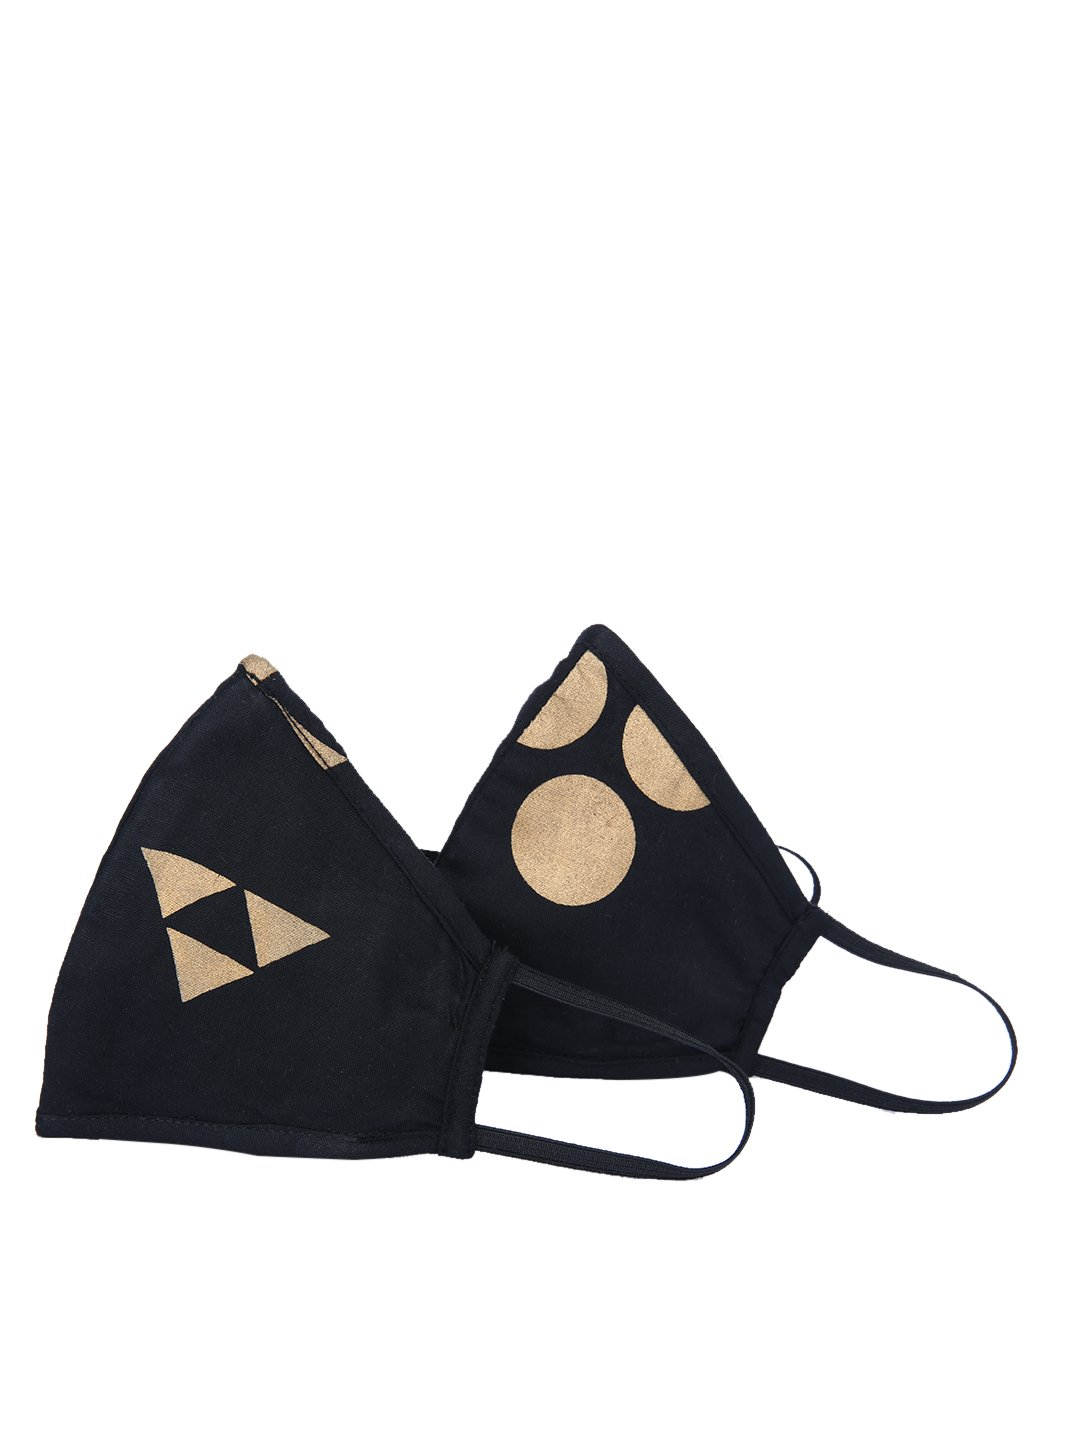 Fabnest | Fabnest Unisex Rayon 3 Ply Gold/Black Foil Print Comfortable Face Masks (Pack Of 2)